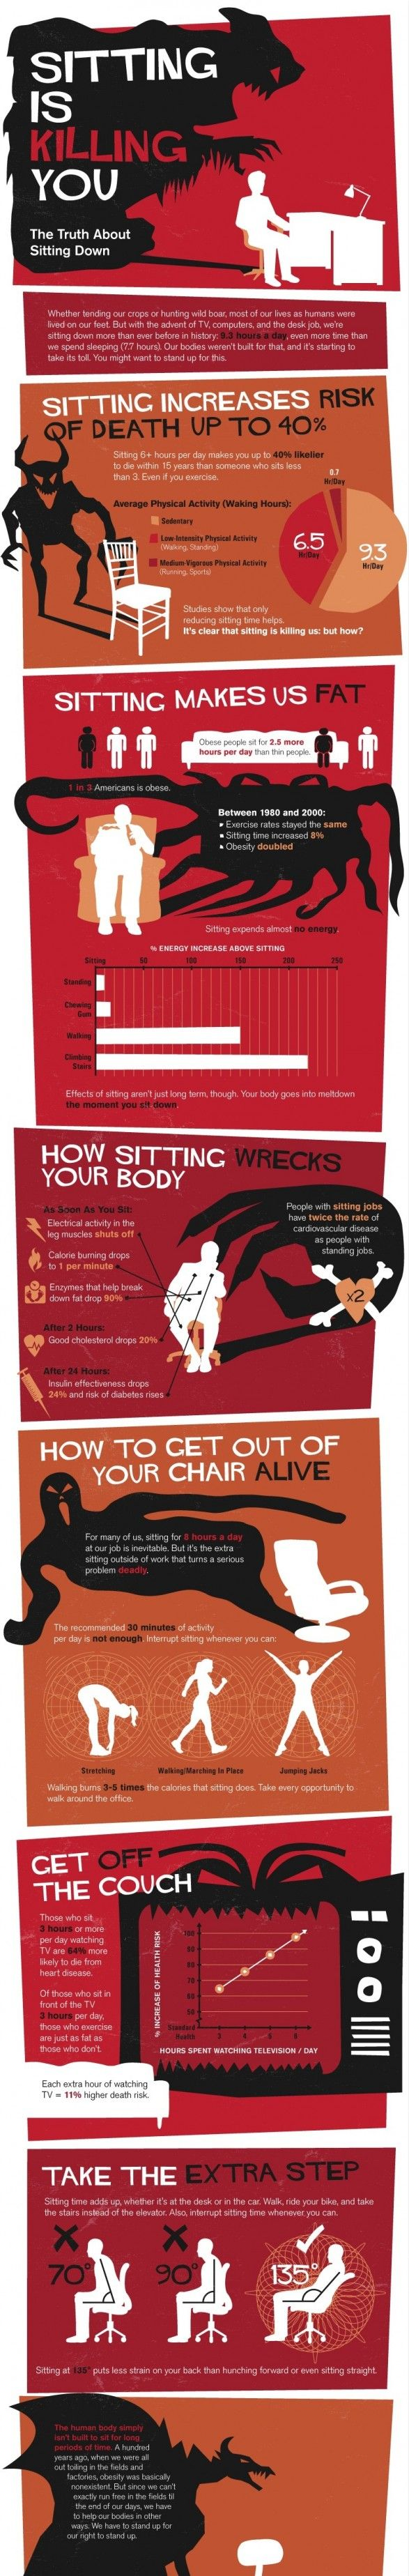 Is Sitting At Your Computer All Day Killing Your Health? 12 Easy Ways to Fit in Fitness